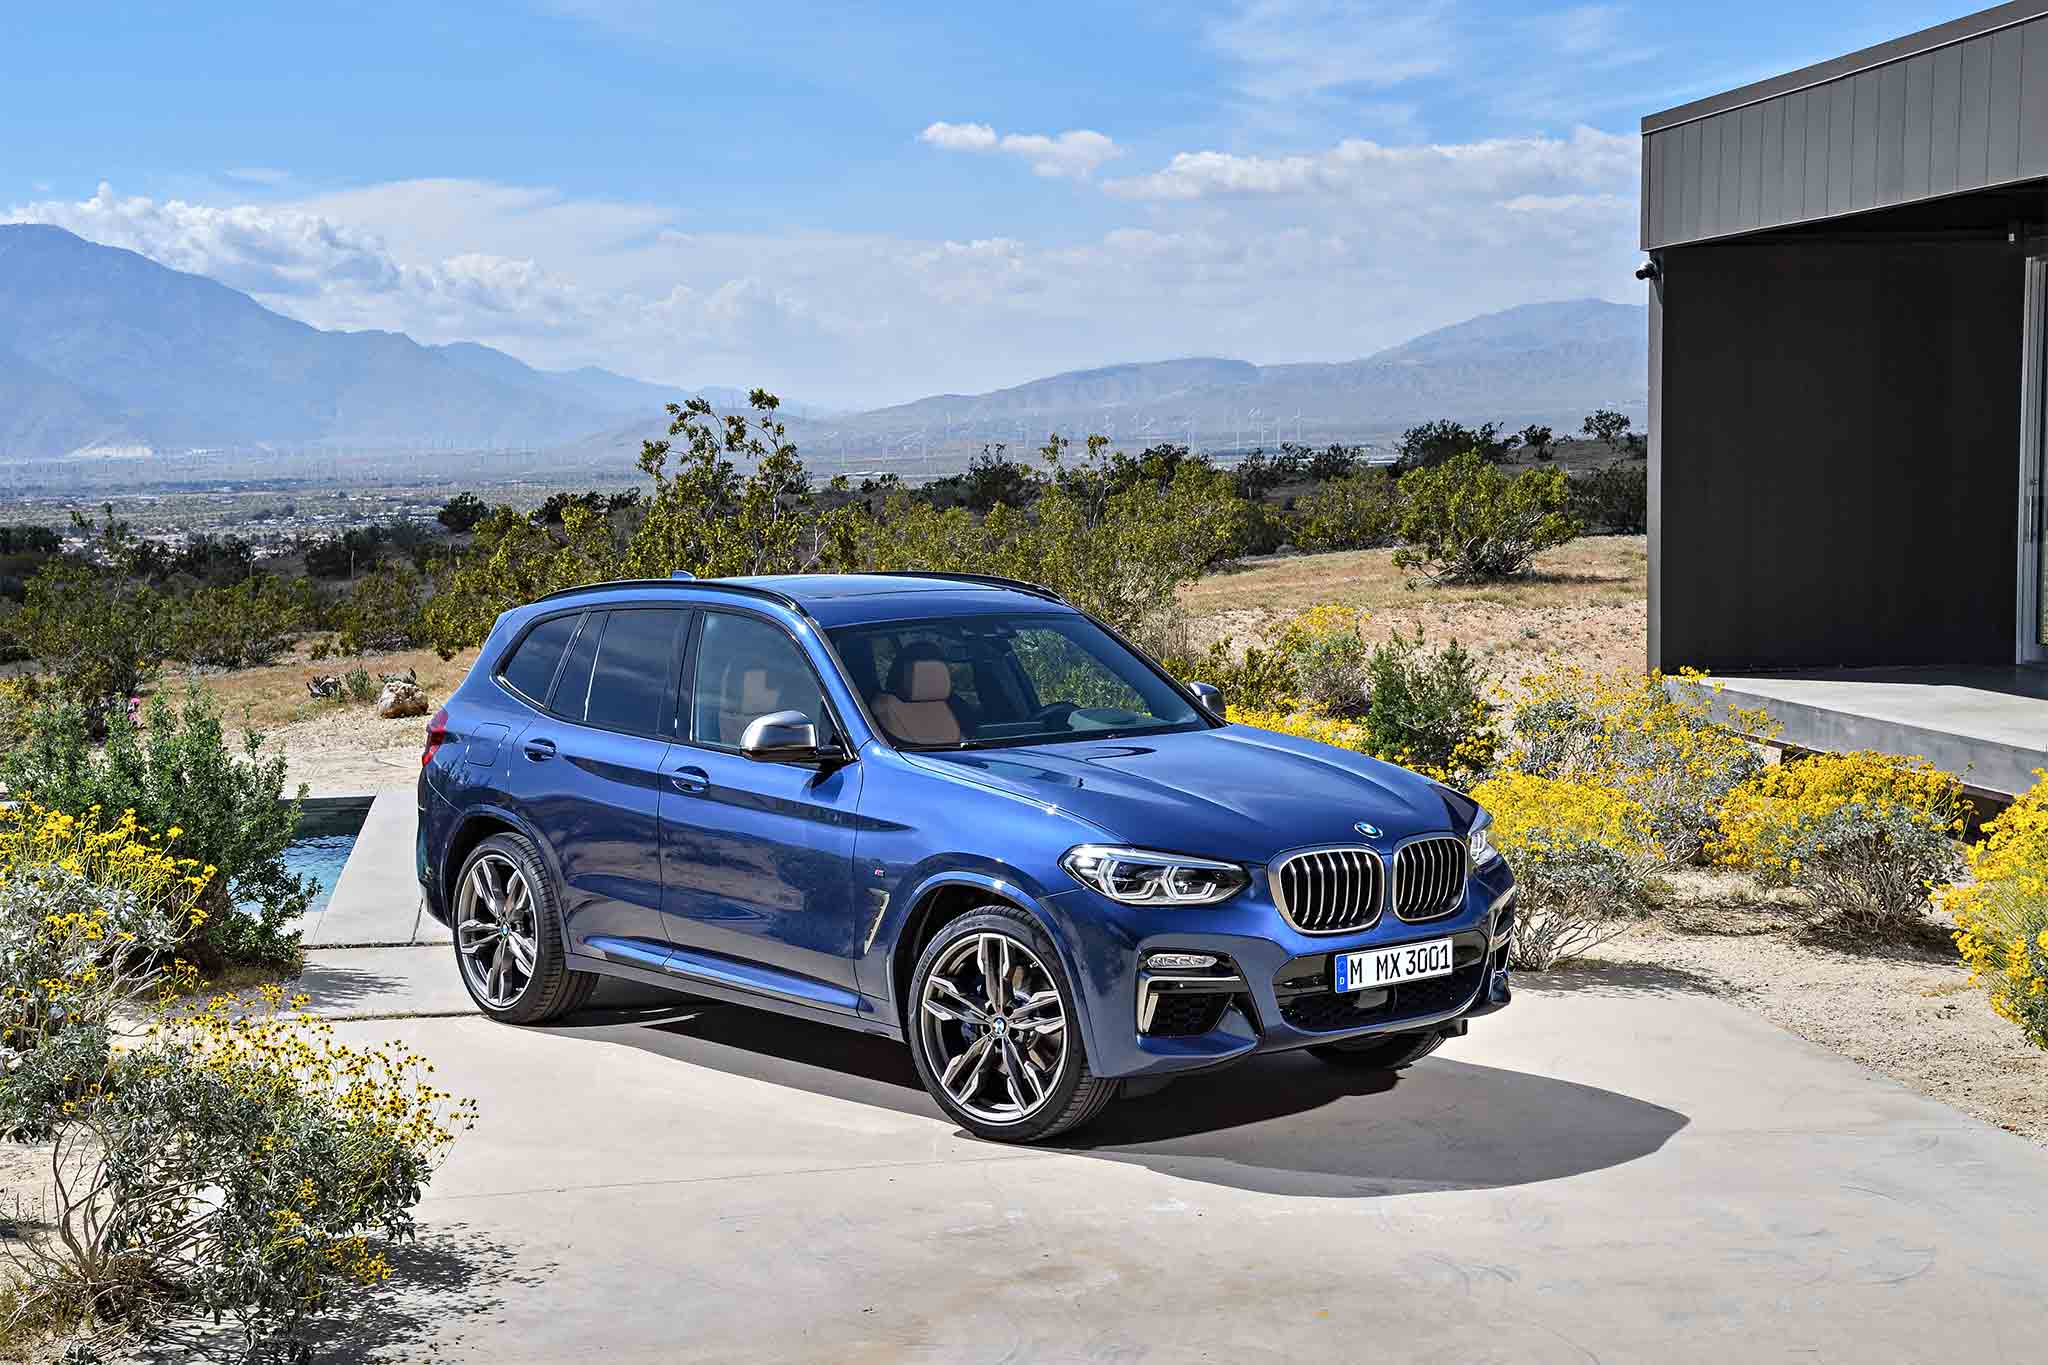 Bmw X3 2018 Pricing >> 2018 BMW X3 Revealed with Performance-Oriented M40i Trim | Automobile Magazine